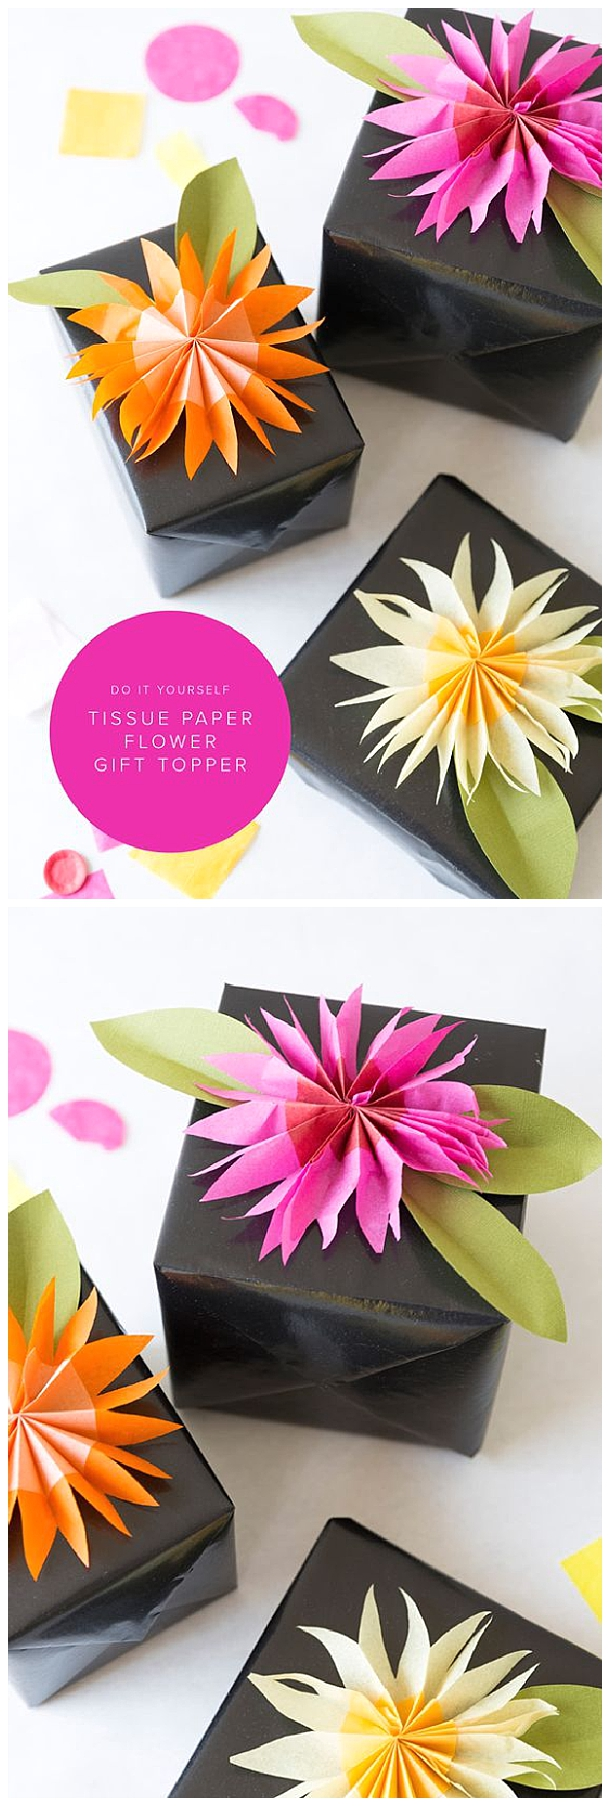 DIY paper tissue flower gift topper perfect for the holidays, birthdays or anytime! via The House That Lars Built - The BEST DIY Gift Toppers - Pretty and EASY Inexpensive Handmade Ideas for Christmas, Birthdays, Holidays and any special occasion! #diygifttoppers #DIYGiftwrapping #diygiftwrap #gifttoppers #christmasgifttoppers #diychristmasgifttoppers #birthdaygifttoppers #diychristmasbows